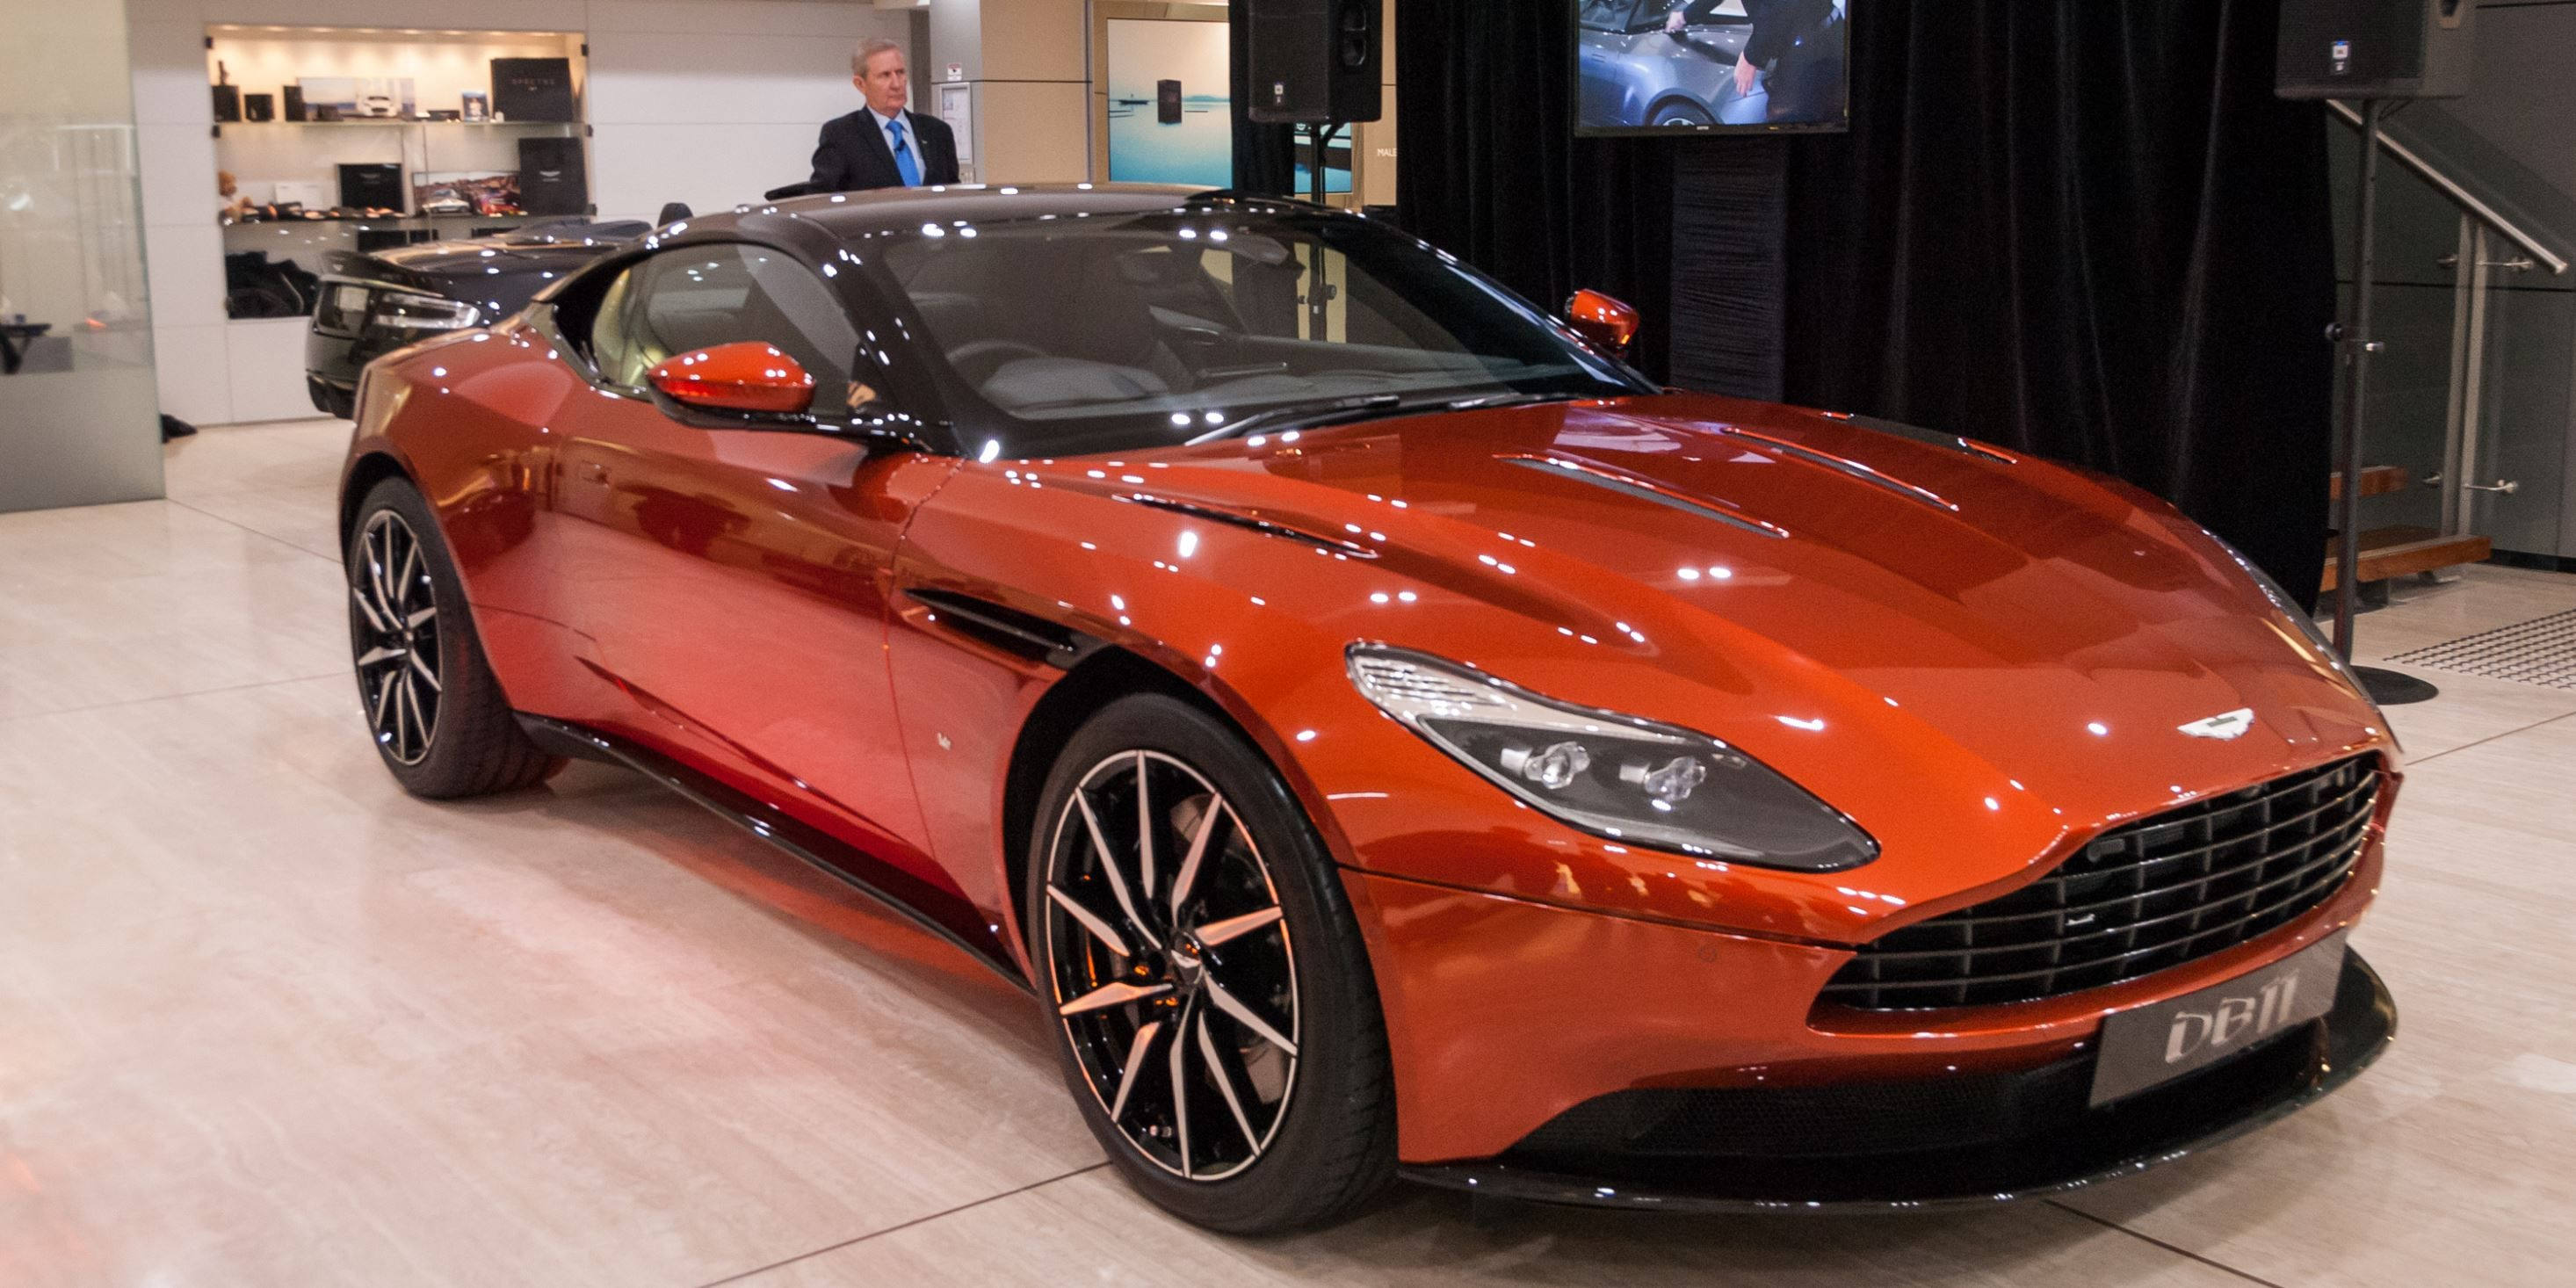 The Aston Martin DB11 has made its debut in Australia unveiled in Sydney yesterday Pricing has also been announced with the DB11 priced from $428 032